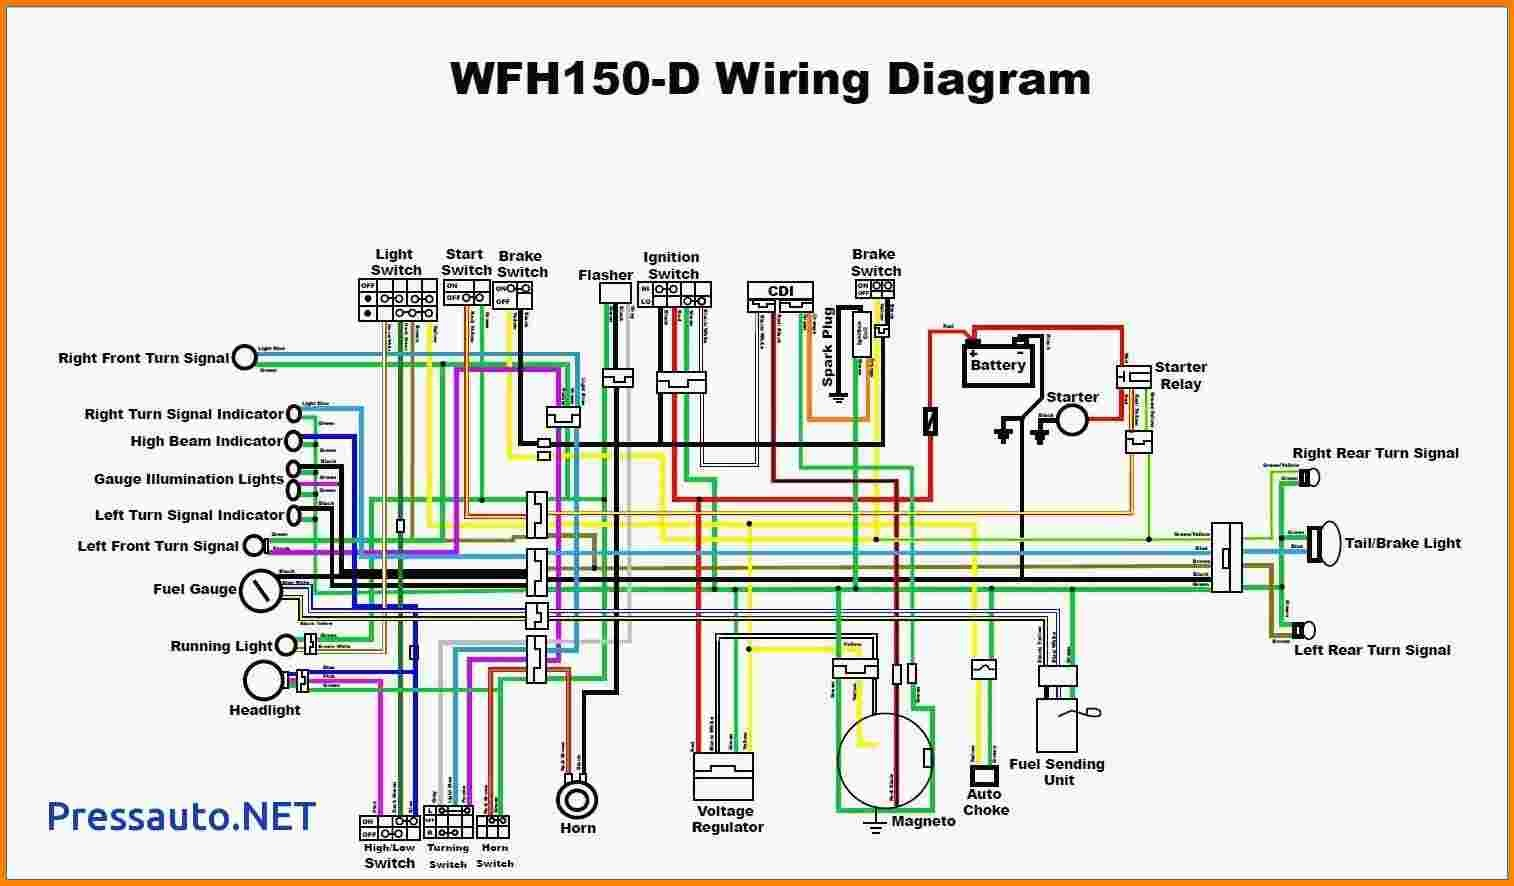 Wiring Harness For Chinese Atv - Wiring Diagram Detailed - Chinese Atv Wiring Diagram 110